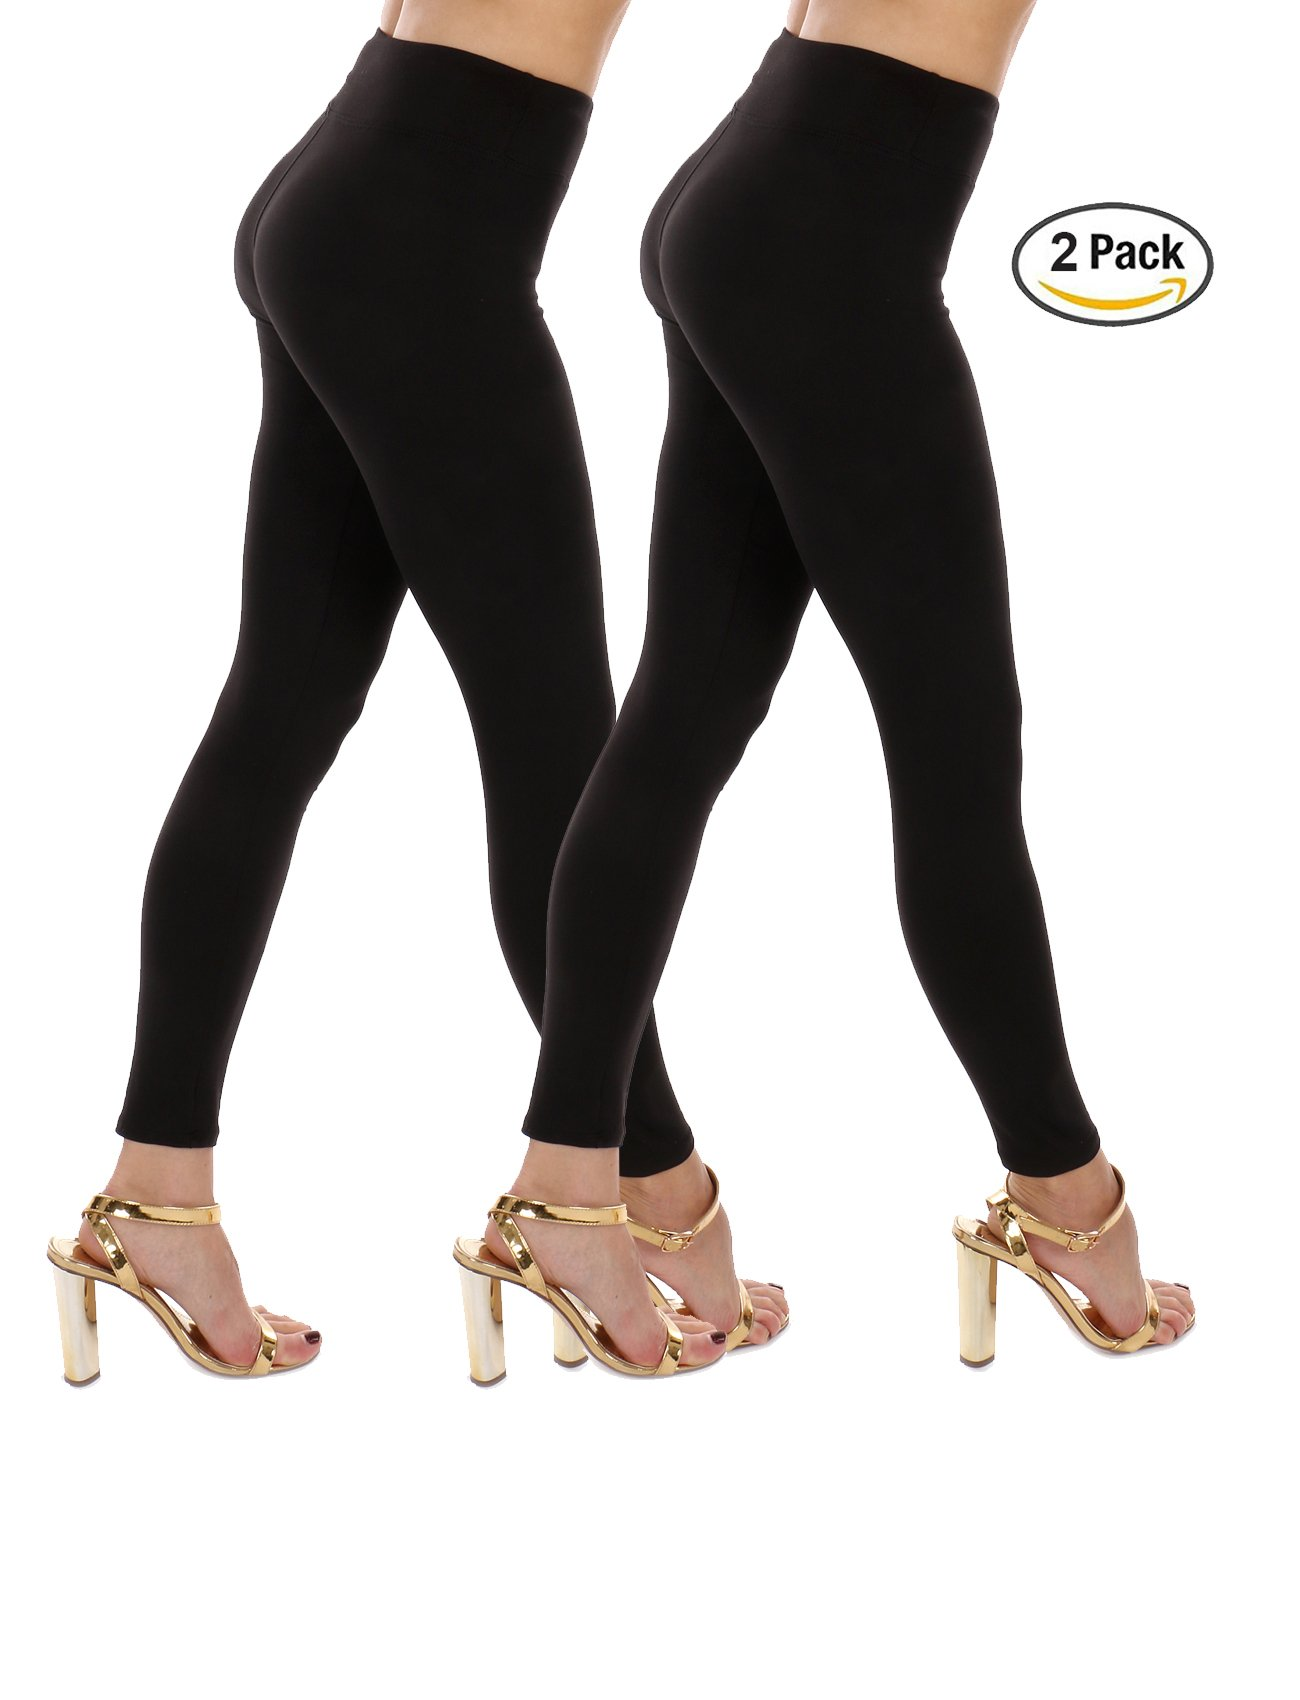 Premium Soft High Waist Yoga Leggings-Ankle Length & Cropped Capri -One Size fits 3 Sizes-Made in The USA (2pk (Black,Black), One Size/ 0-6 (XS,S))